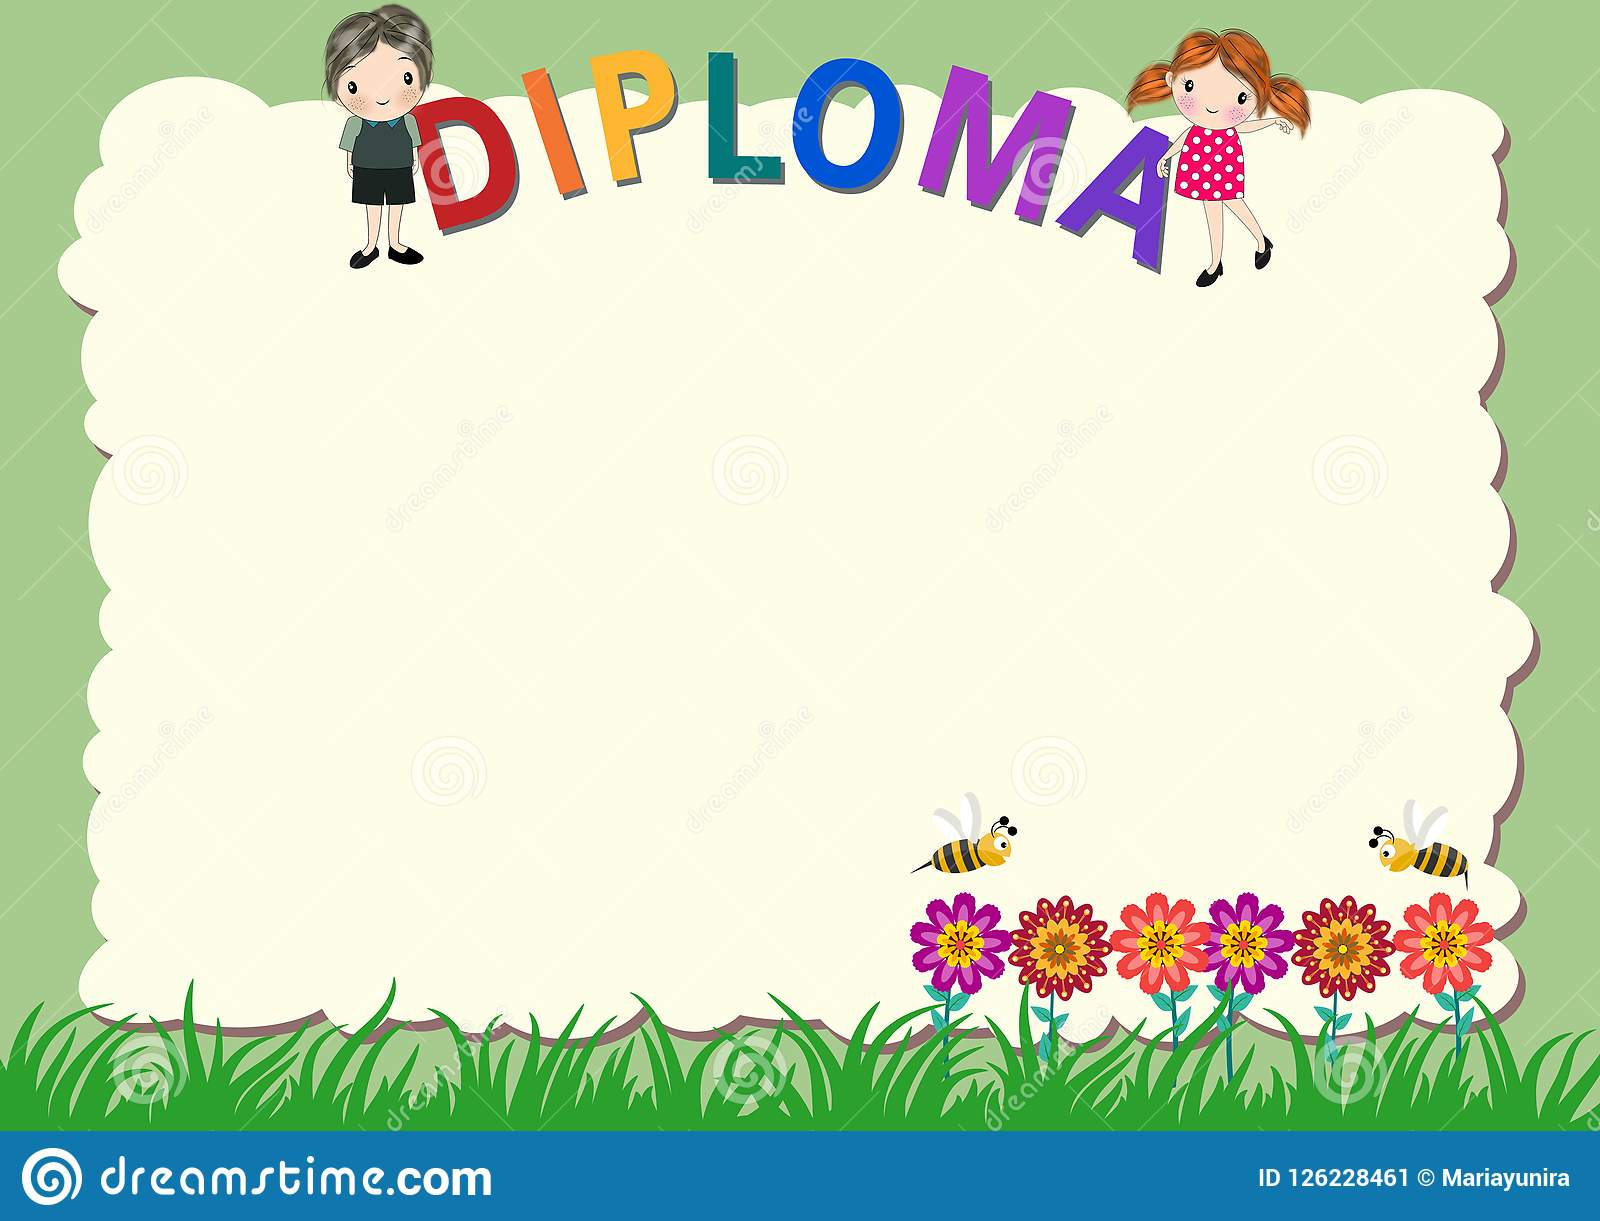 kindergarten diploma certificate template stock illustration